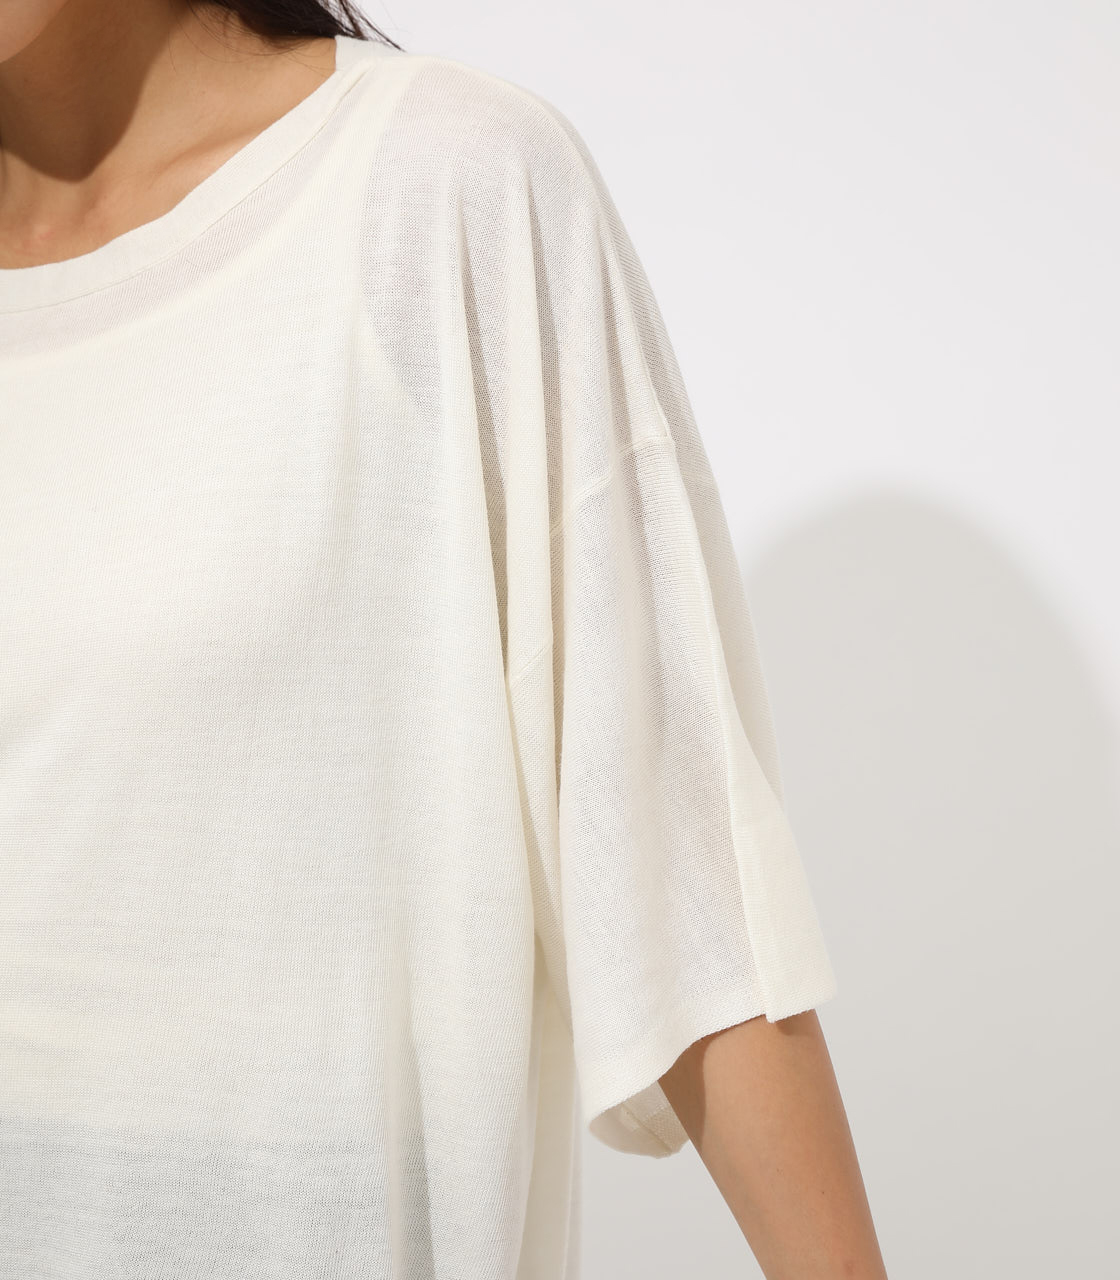 【AZUL BY MOUSSY】SQUARE LOOSE KNIT TOPS 詳細画像 O/WHT 8